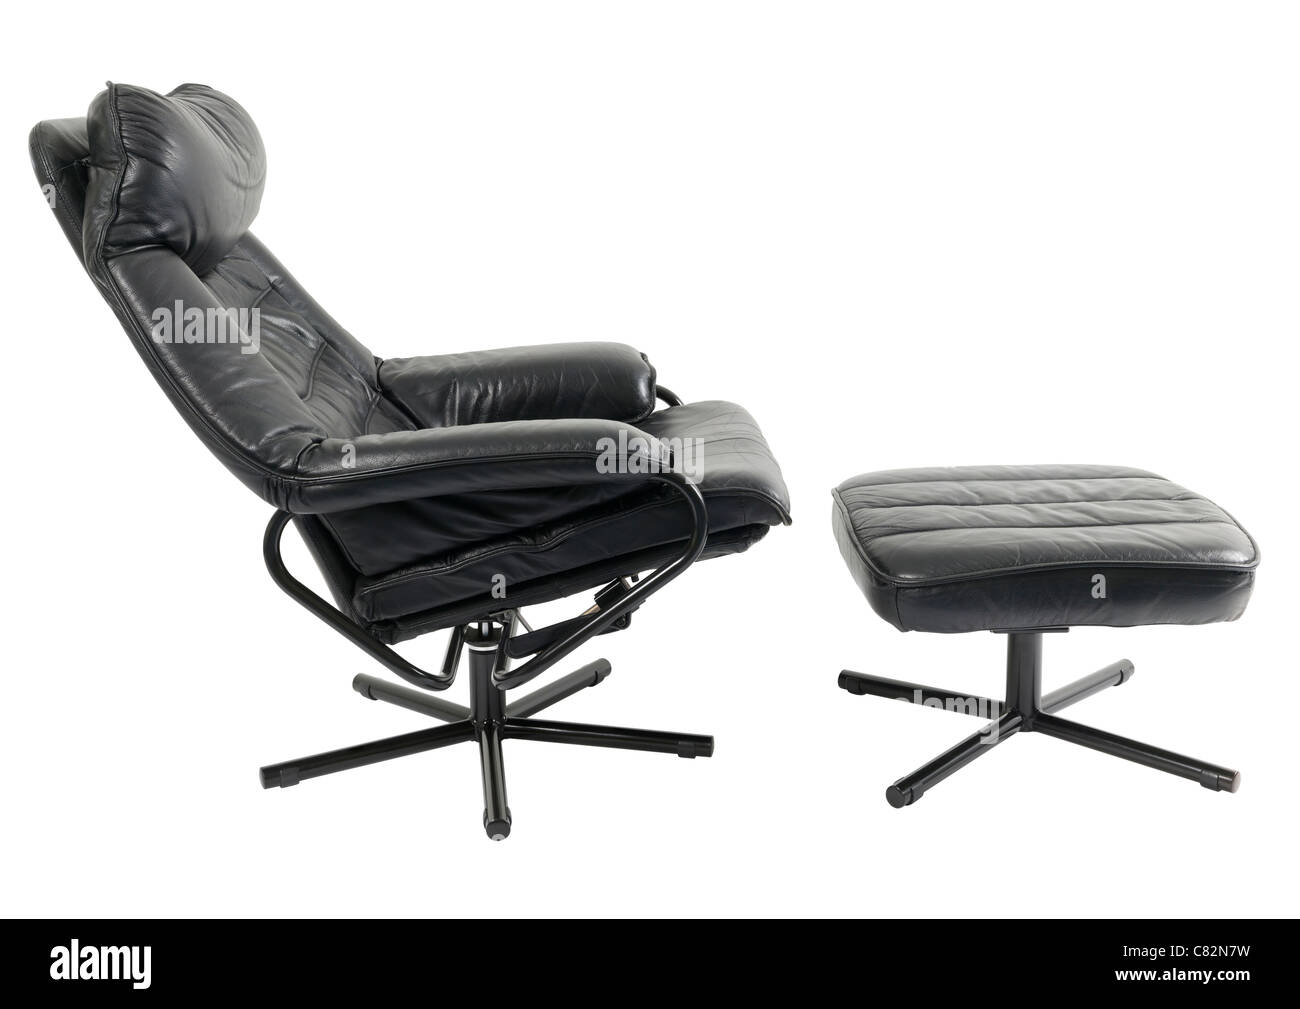 Black leather reclining chair and footstool on white background - Stock Image